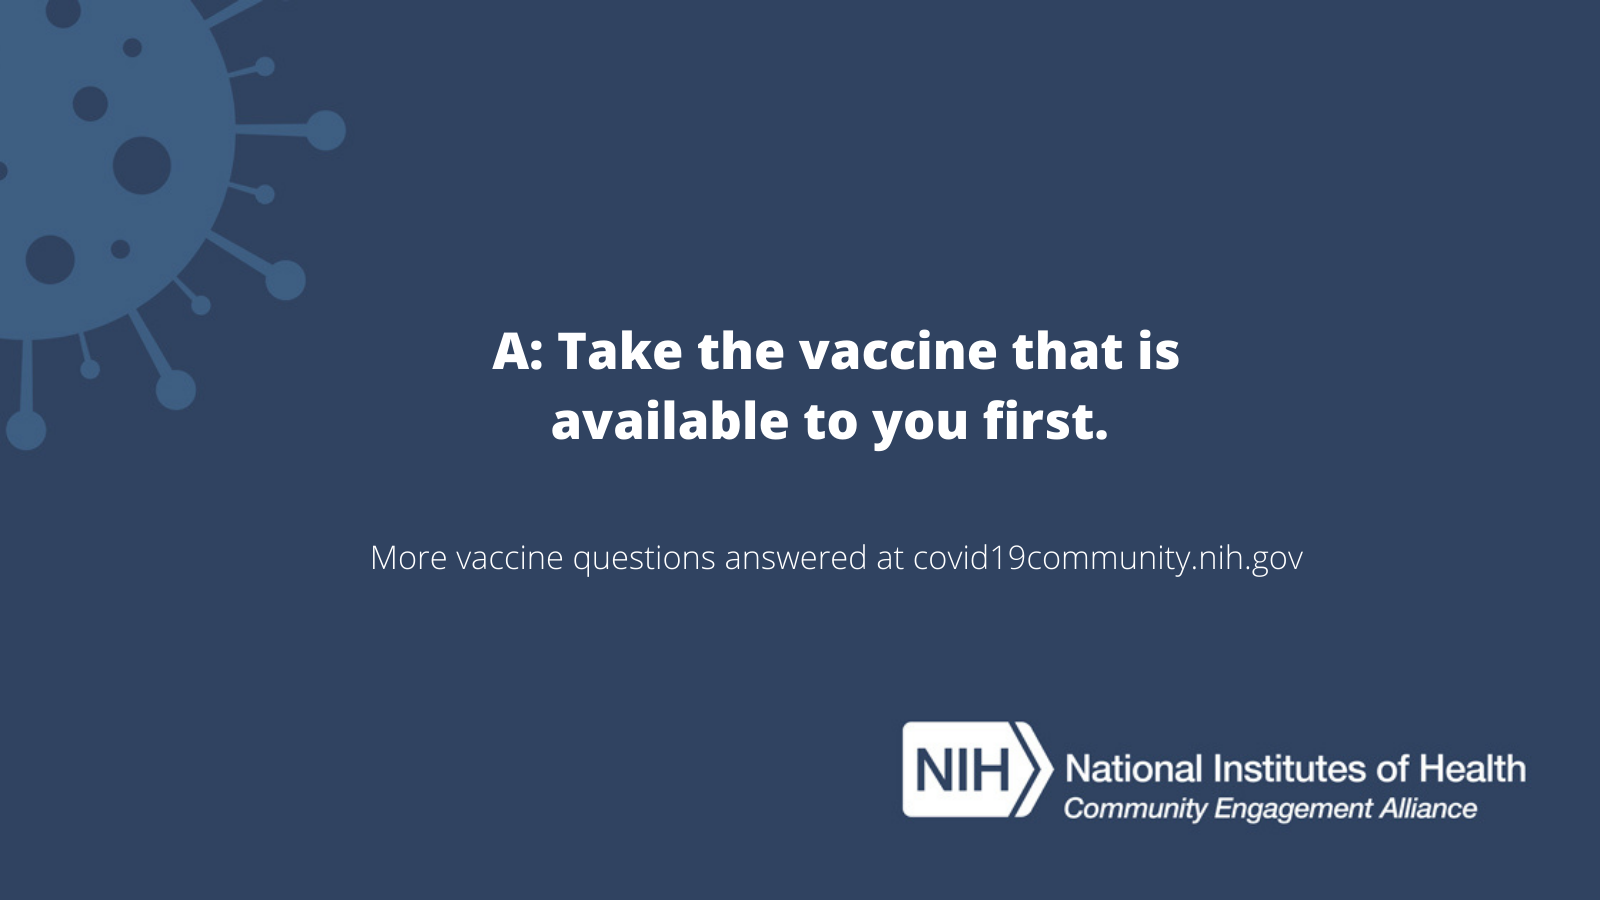 A: Take the vaccine that is available to your first. More vaccine questions answered at covid19community.nih.gov